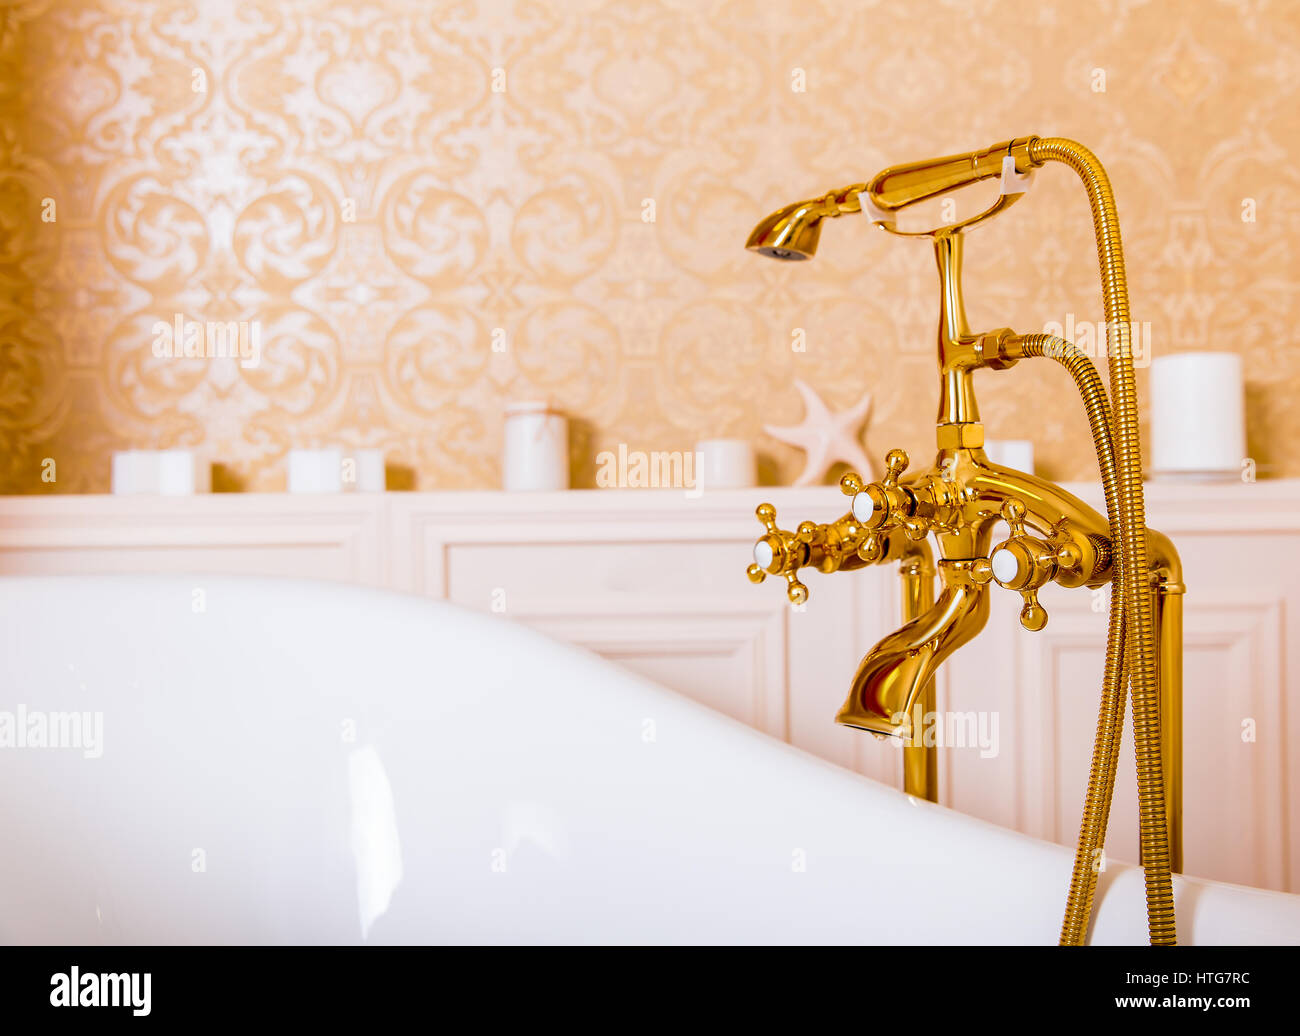 Wonderful Tub Paint Big Bathtub Repair Contractor Shaped How To Paint A Bath Tub Painting The Bathtub Old Miracle Method Refinishing FreshReglazing Shower Rich Gold Faucet And White Bath In The Bathroom. Luxury Sanitary ..